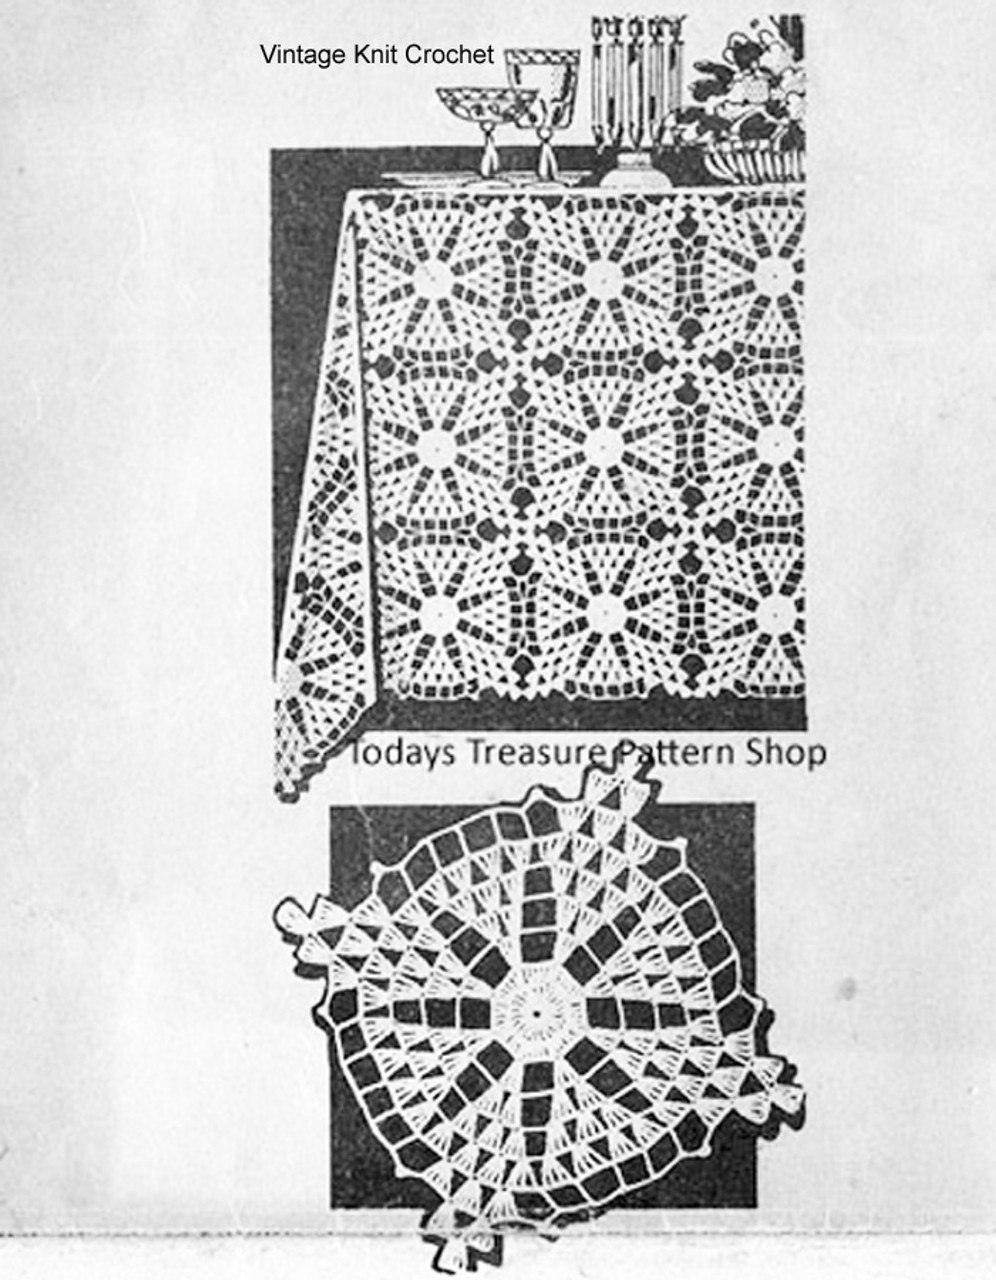 Mail Order Crochet Tablecloth Pattern, Square Medallions, Design 595